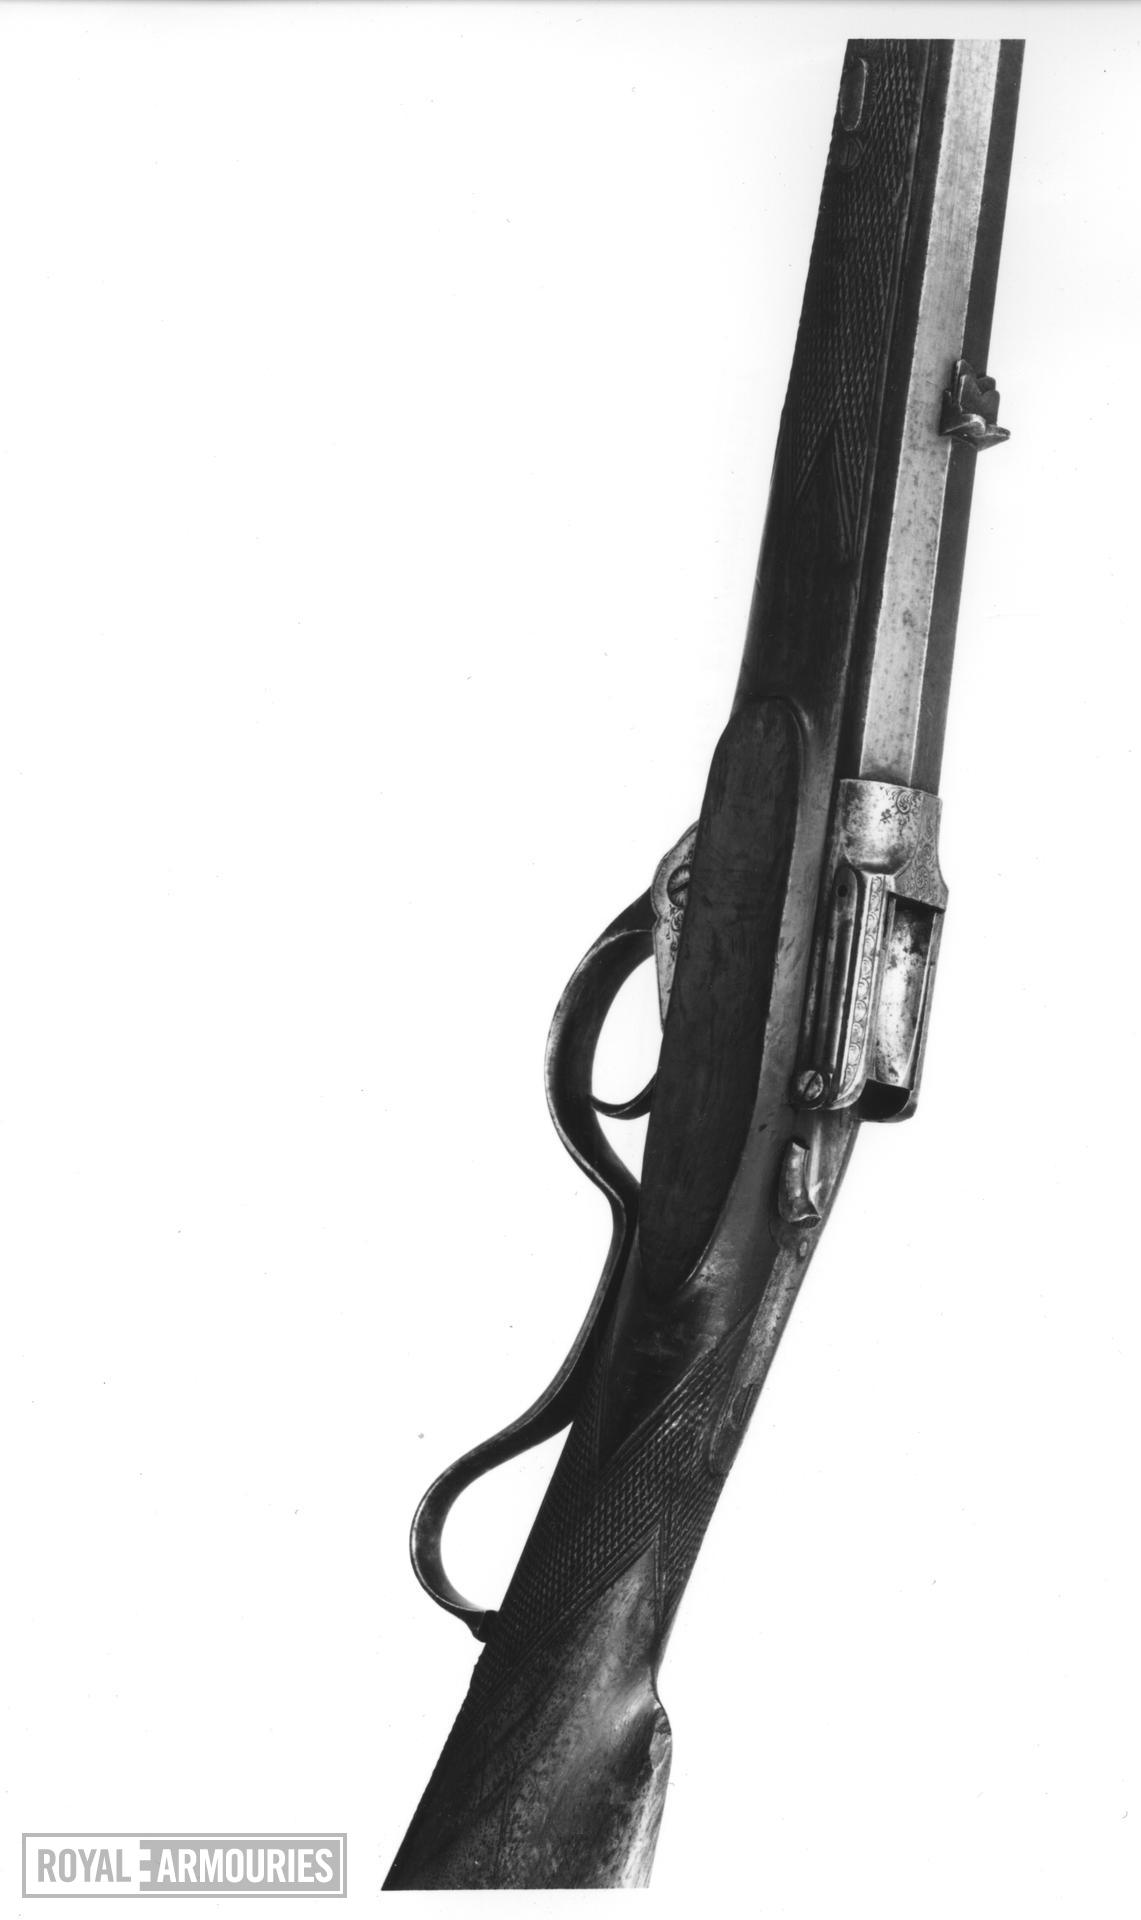 Centrefire breech-loading rifle - Bailey's Patent Rook and Rabbit rifle